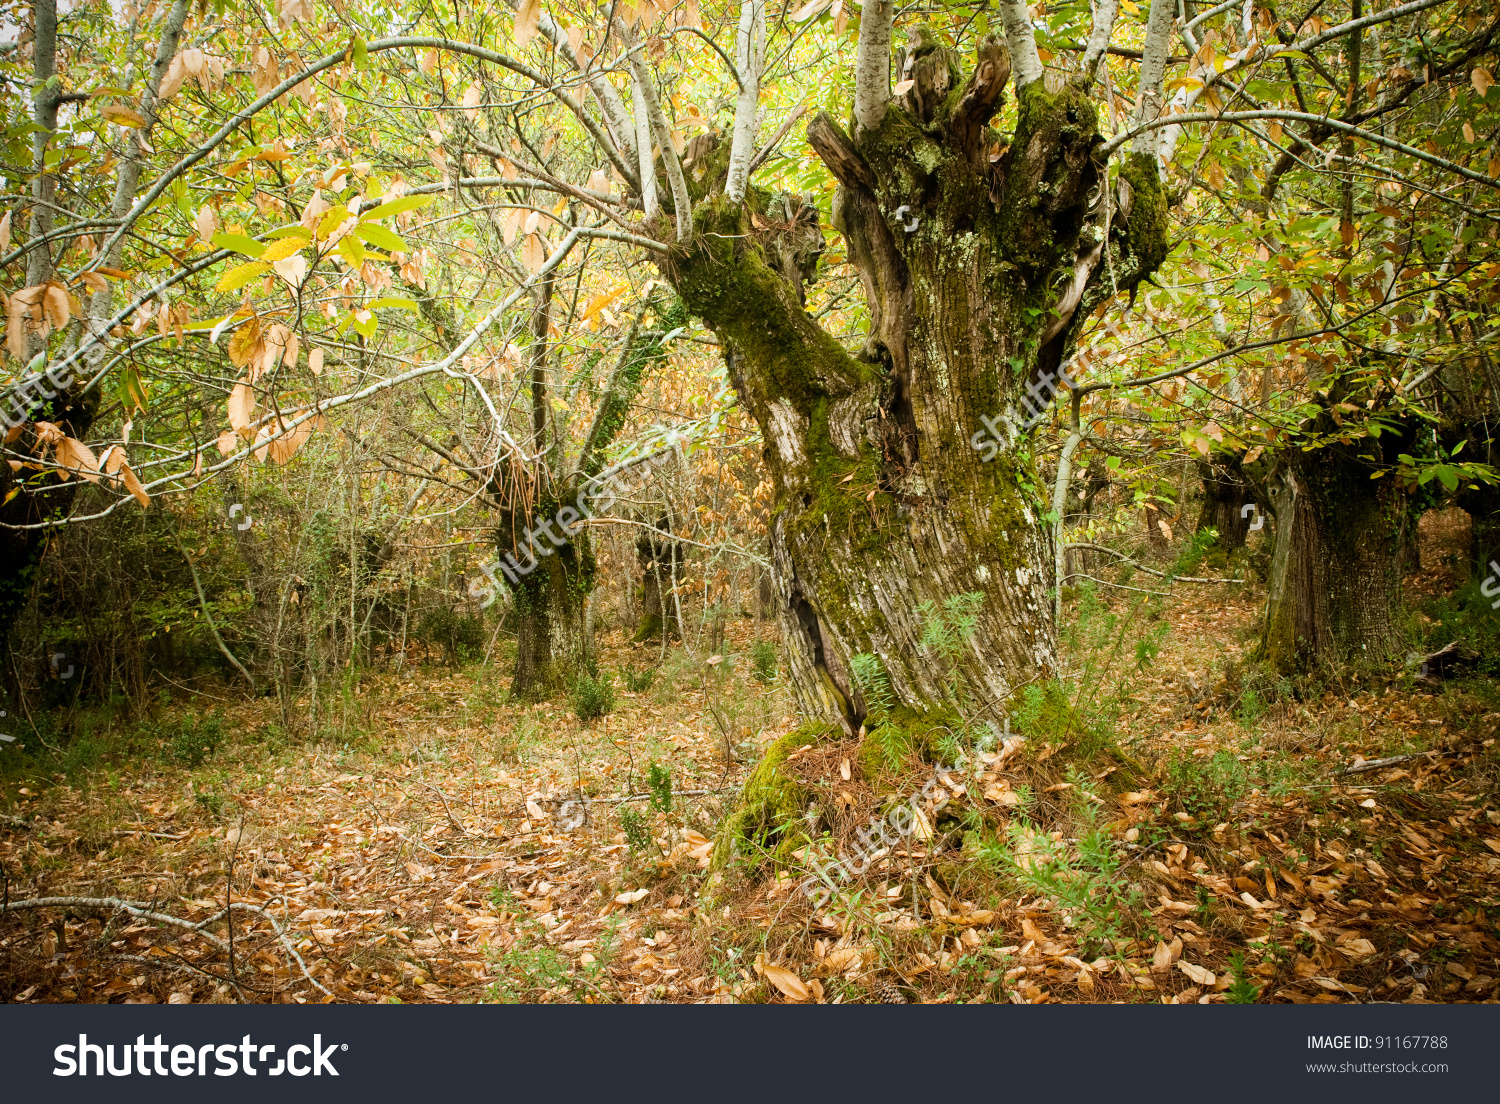 Chestnut Forest In Galicia, Spain Stock Photo 91167788 : Shutterstock.